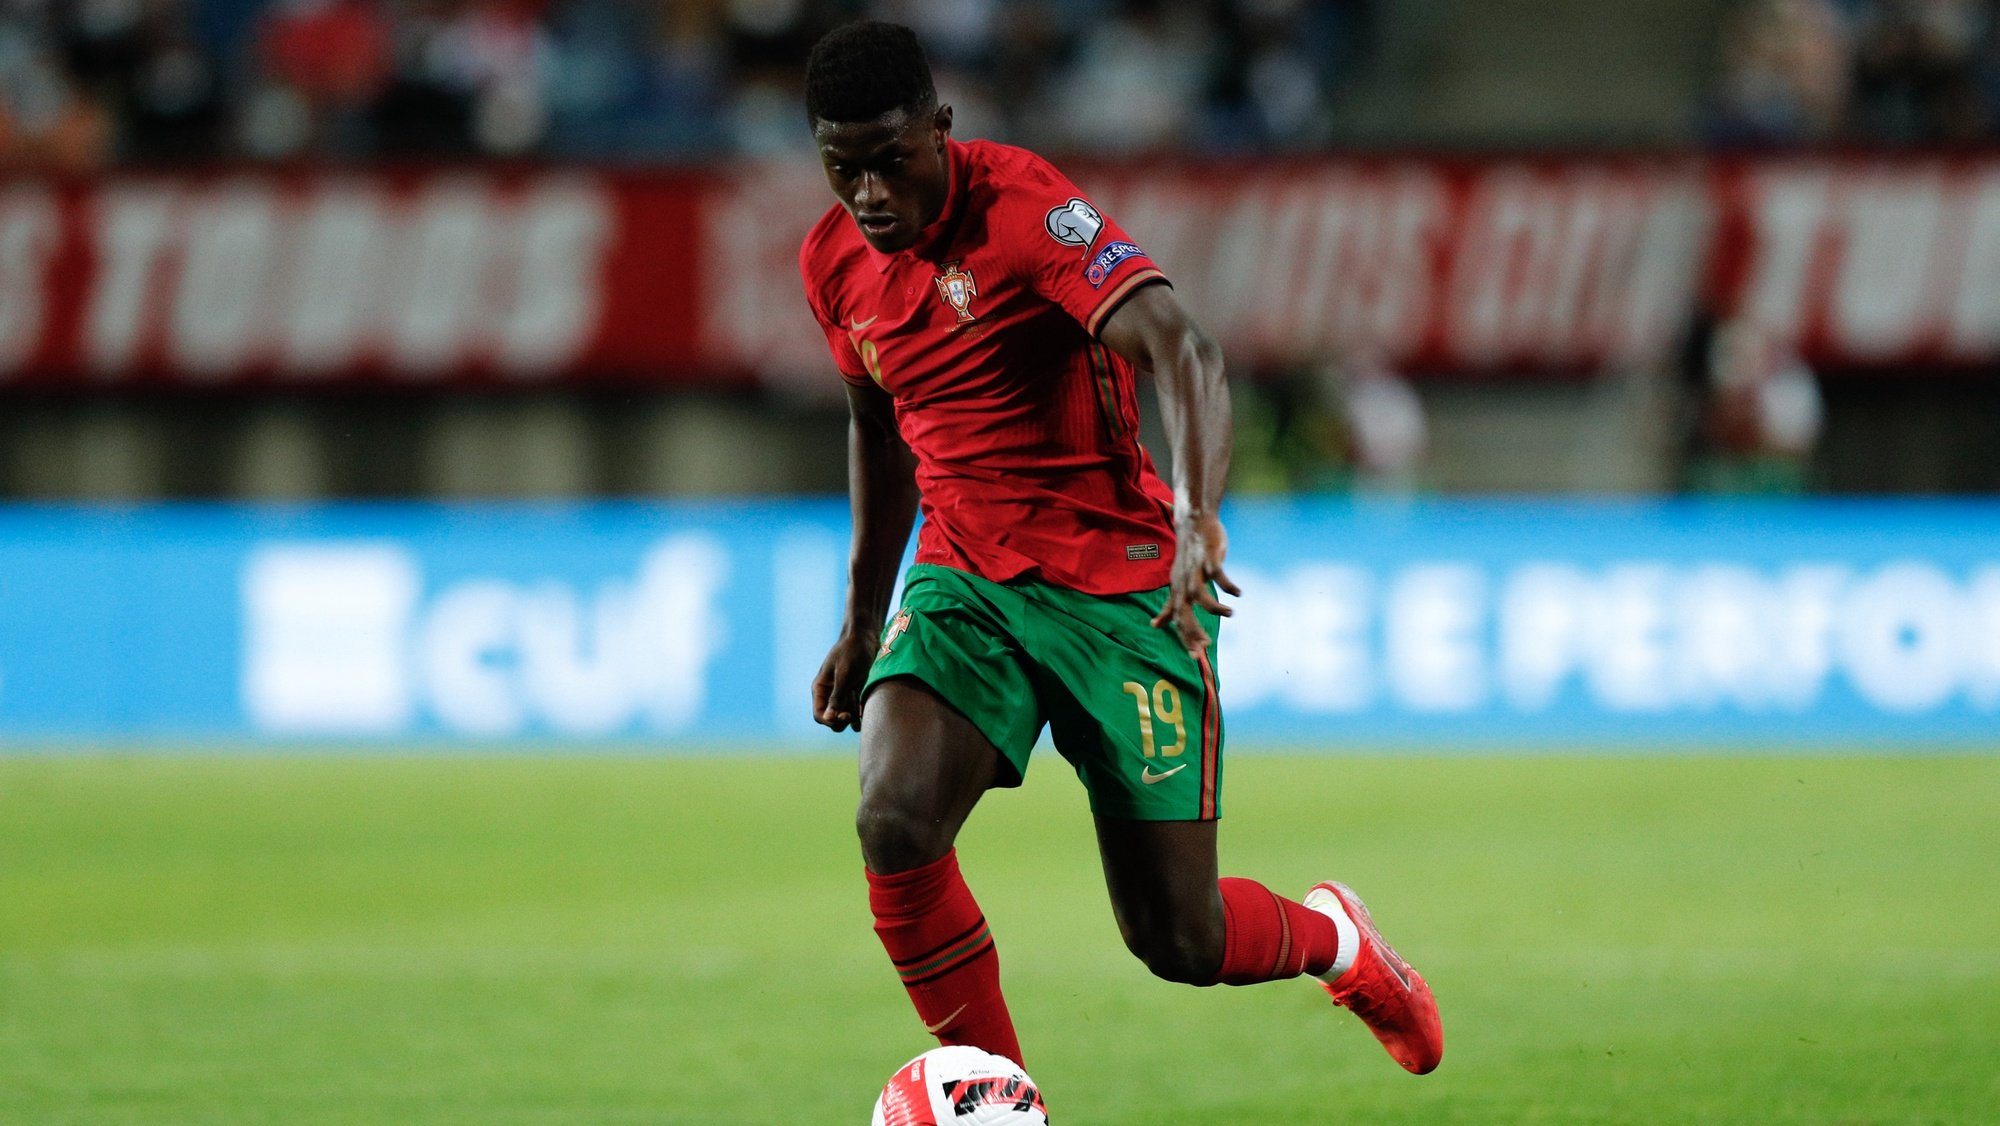 Nuno Mendes, of Portugal in action during the FIFA World Cup  Qatar 2022 group A soccer match between Portugal and Ireland held at Algarve stadium in Faro, south of Portugal,  01 September  2021.  Cristiano Ronaldo is now the best scorer of all times in terms of national teams. ANTONIO COTRIM/LUSA